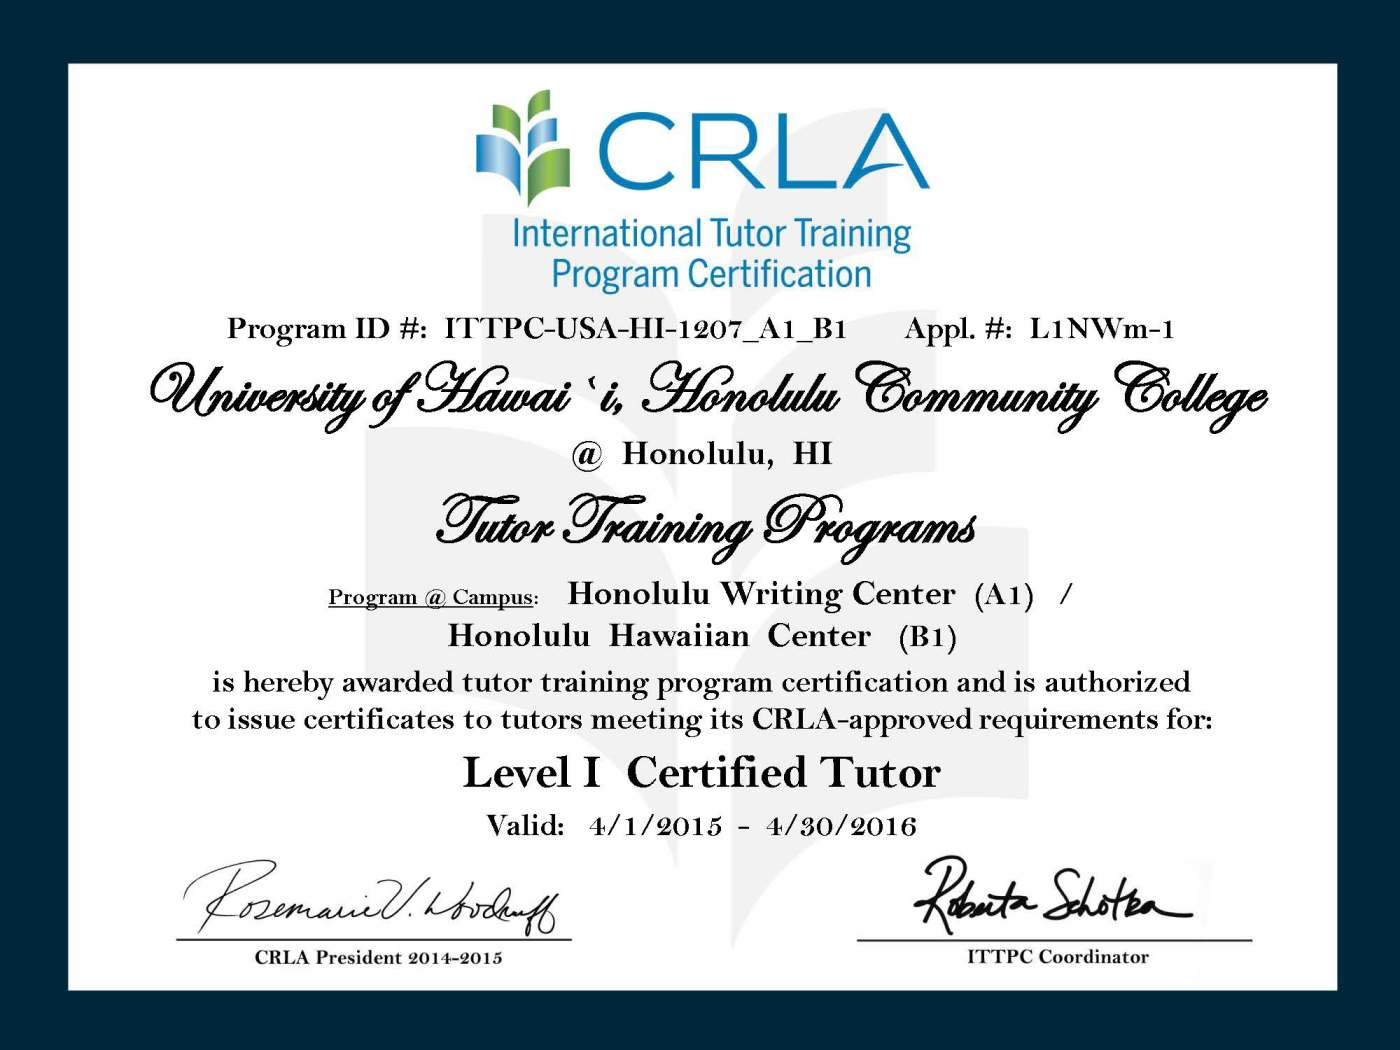 Honolulu Ccs Writing Center Receives Crla Certification The Water